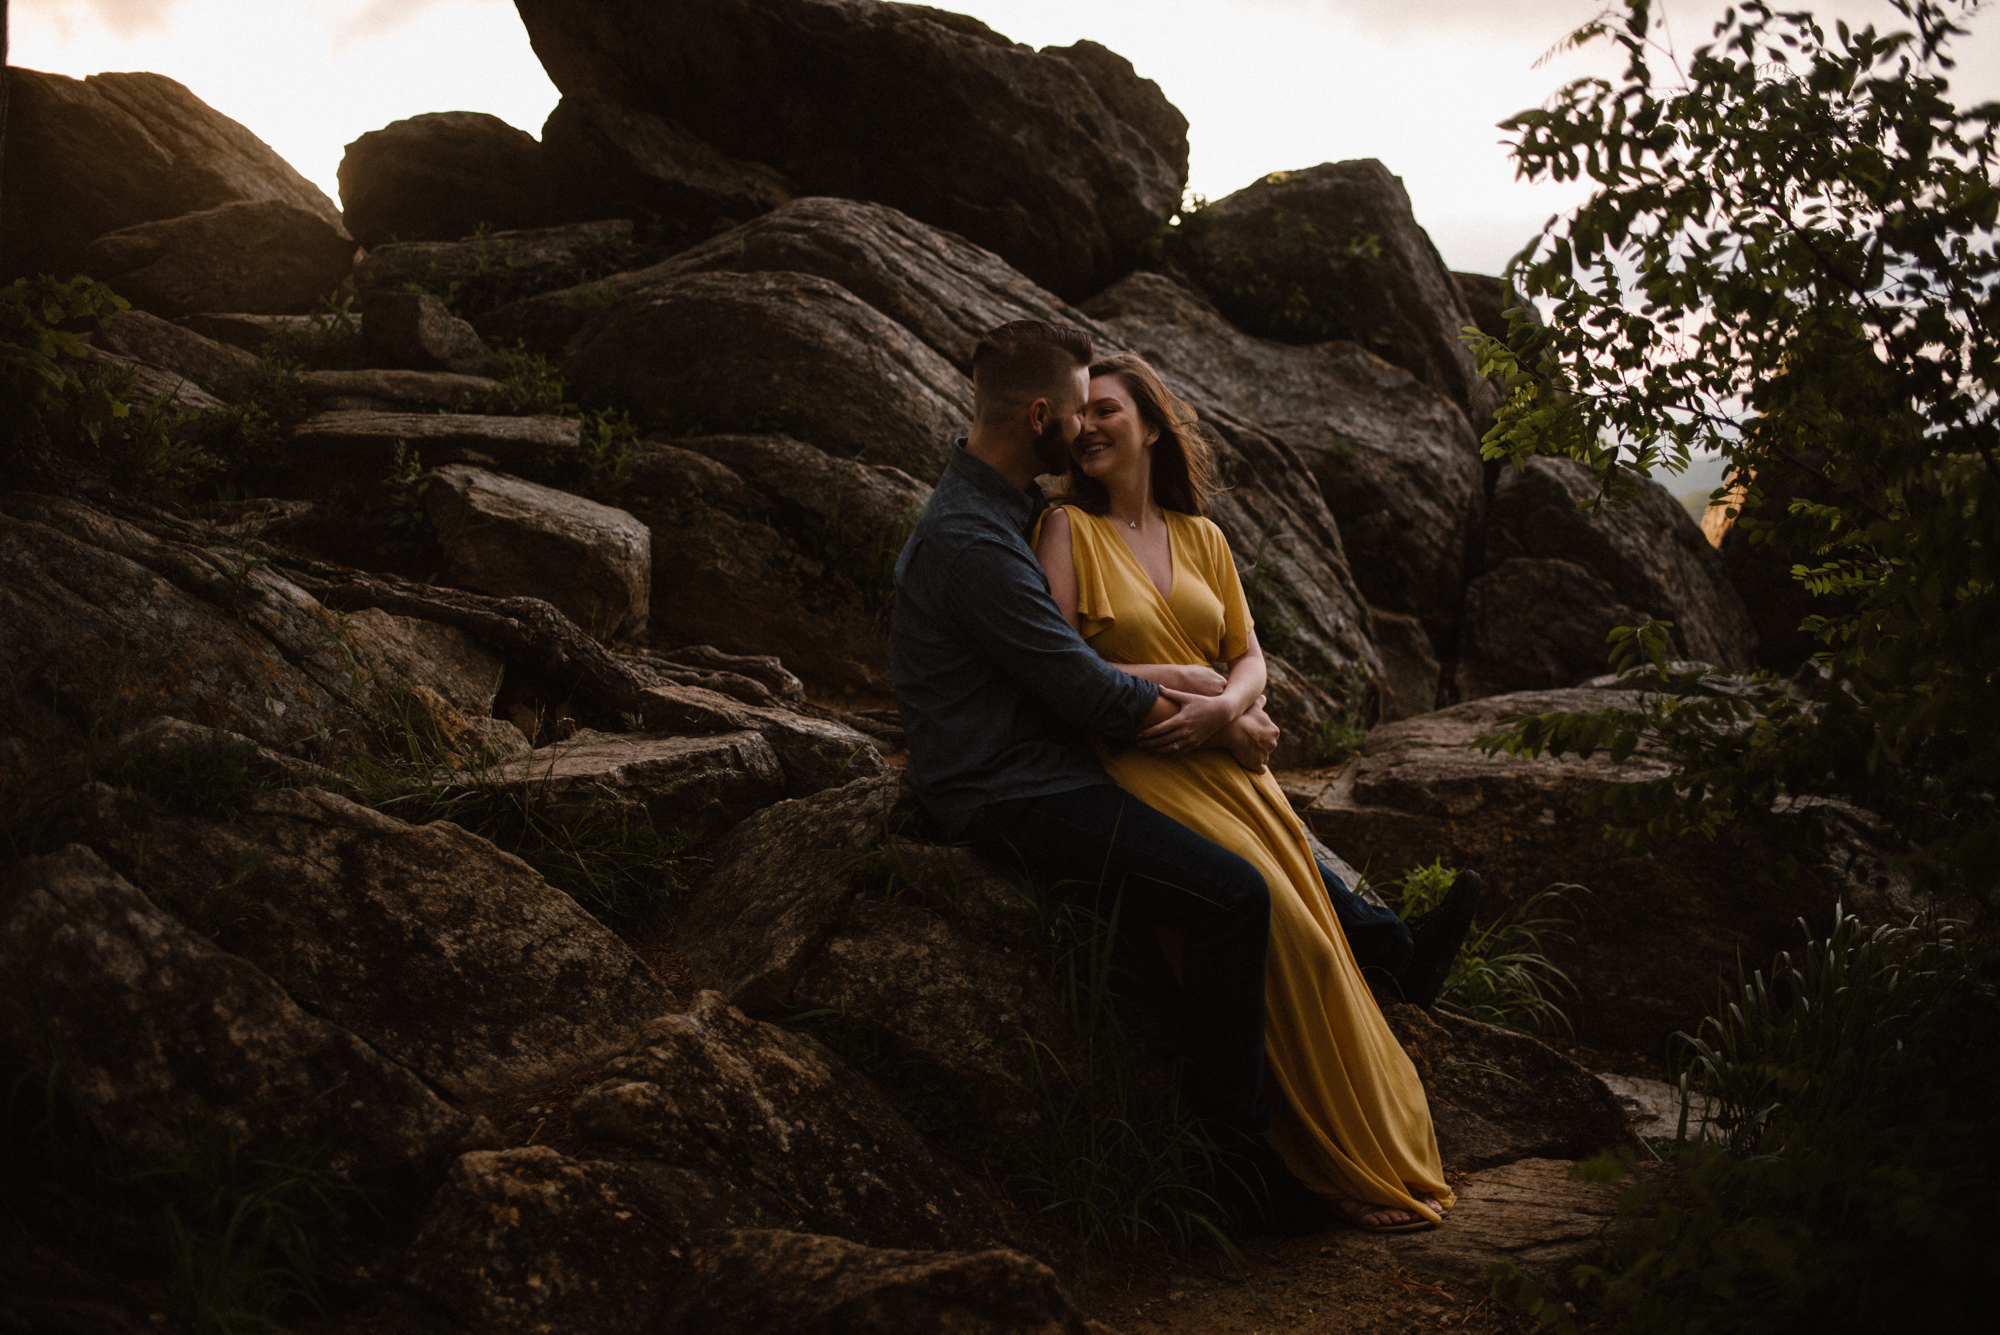 Camryn and Larry Sunrise Engagement Session in Shenandoah National Park - Things to Do in Luray Virginia - Adventurous Couple Photo Shoot White Sails Creative_15.jpg